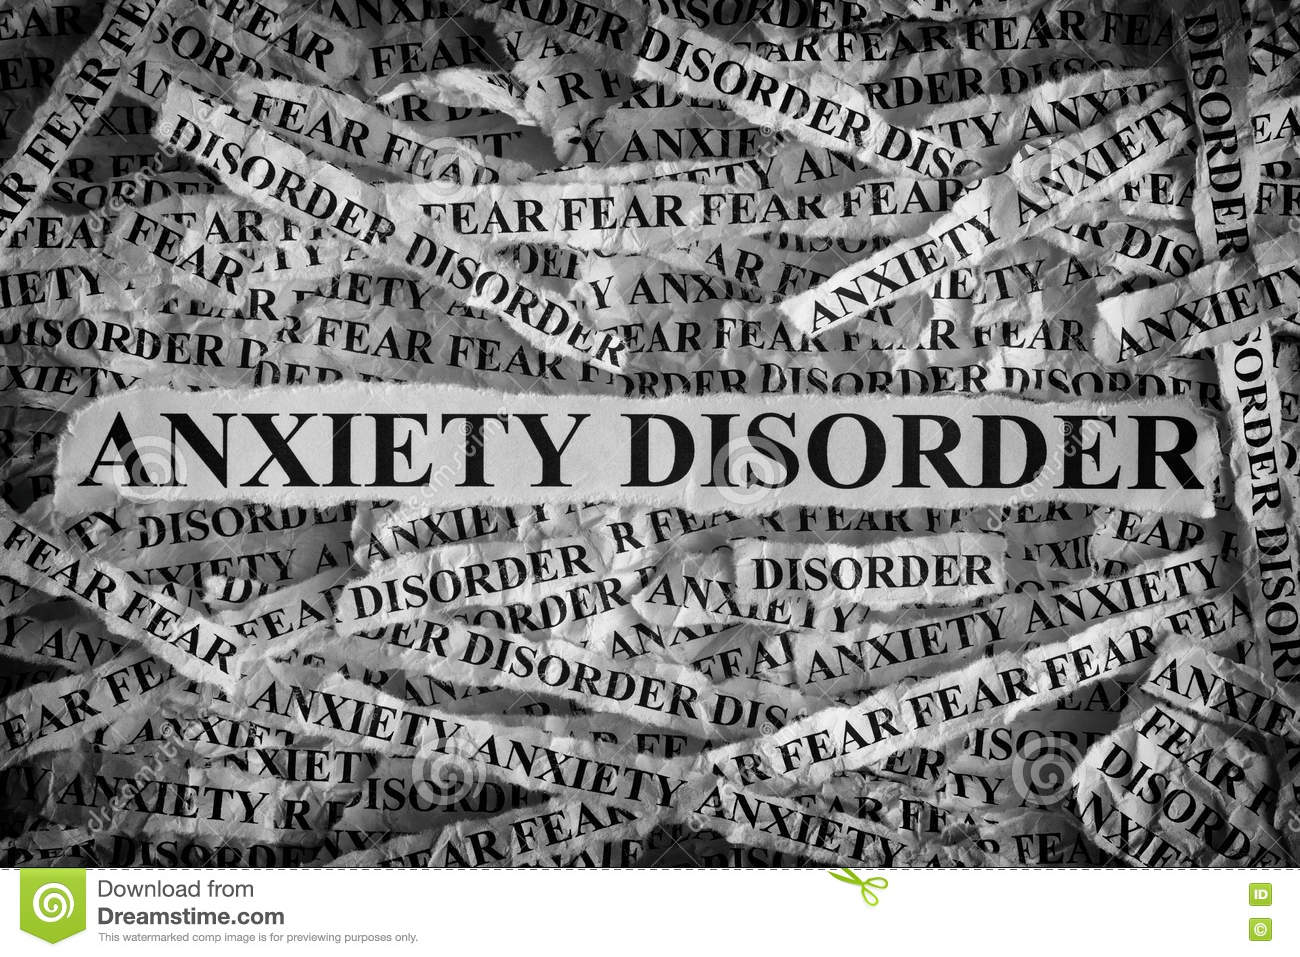 an analysis of the social anxiety disorder research This does not allow a quantitative analysis of the results secondly, no studies  investigated social anxiety disorder in a selective and specific.